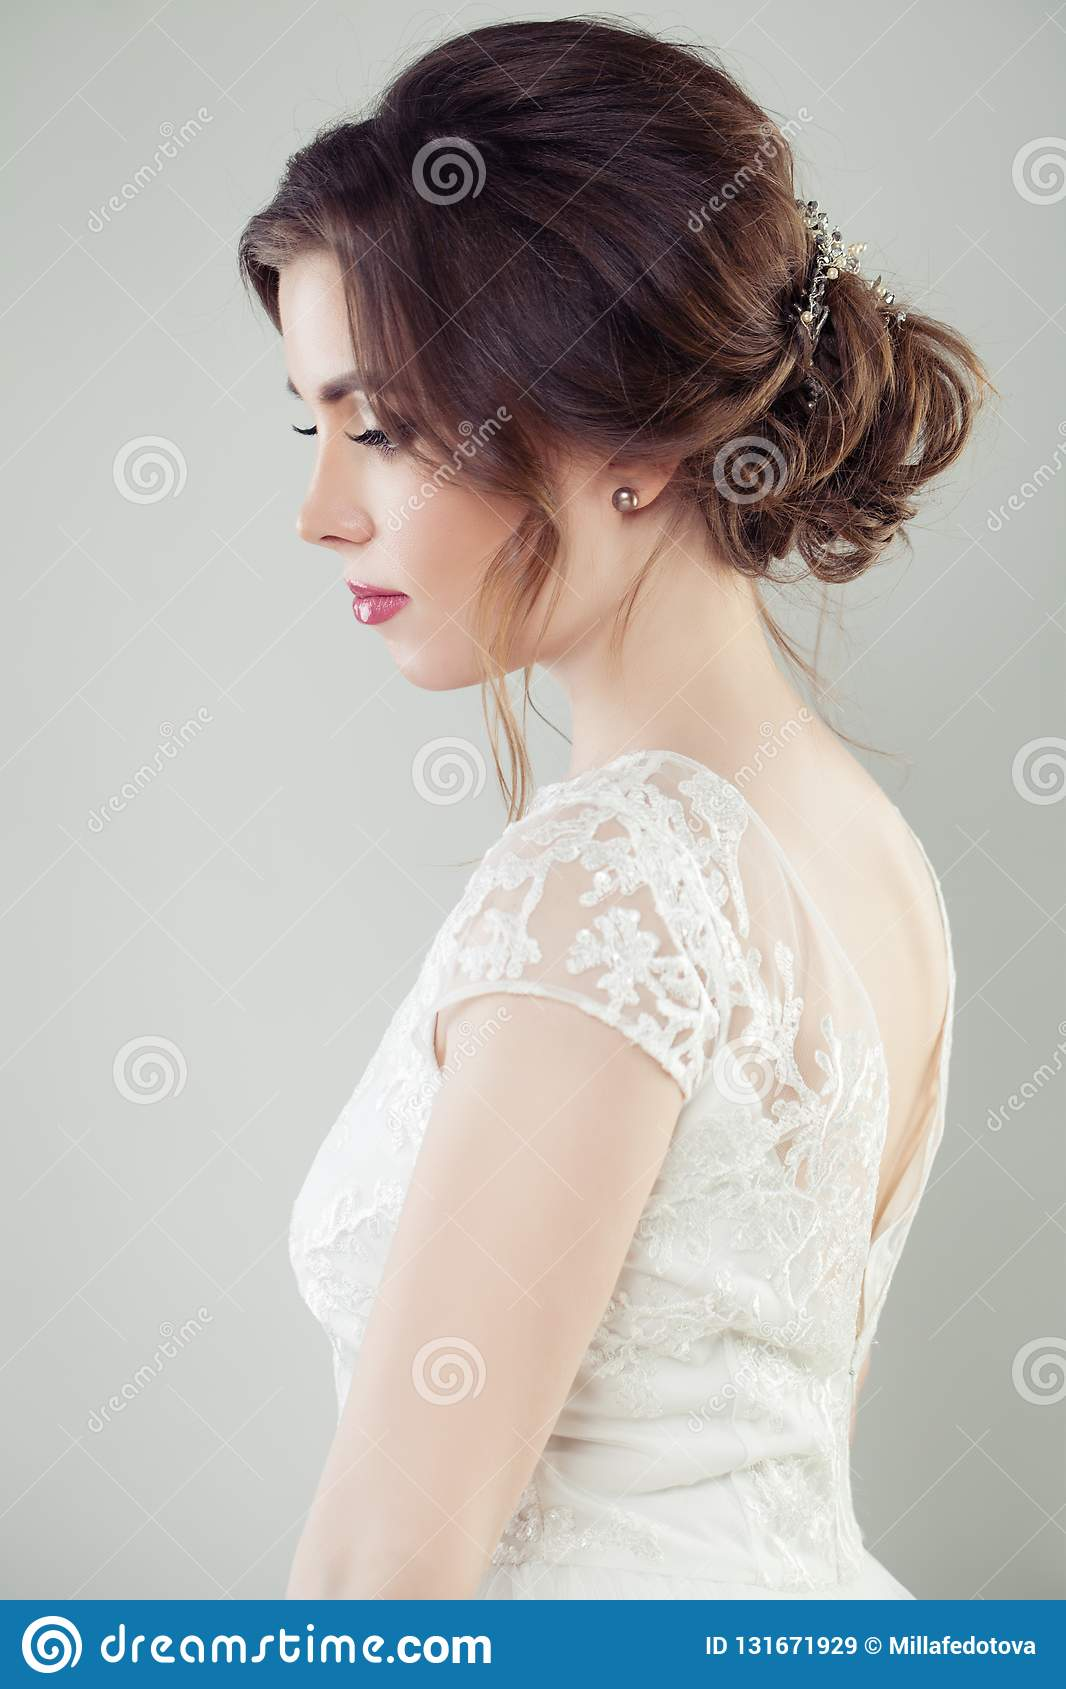 Wedding Hair Beautiful Bride With Makeup And Bridal